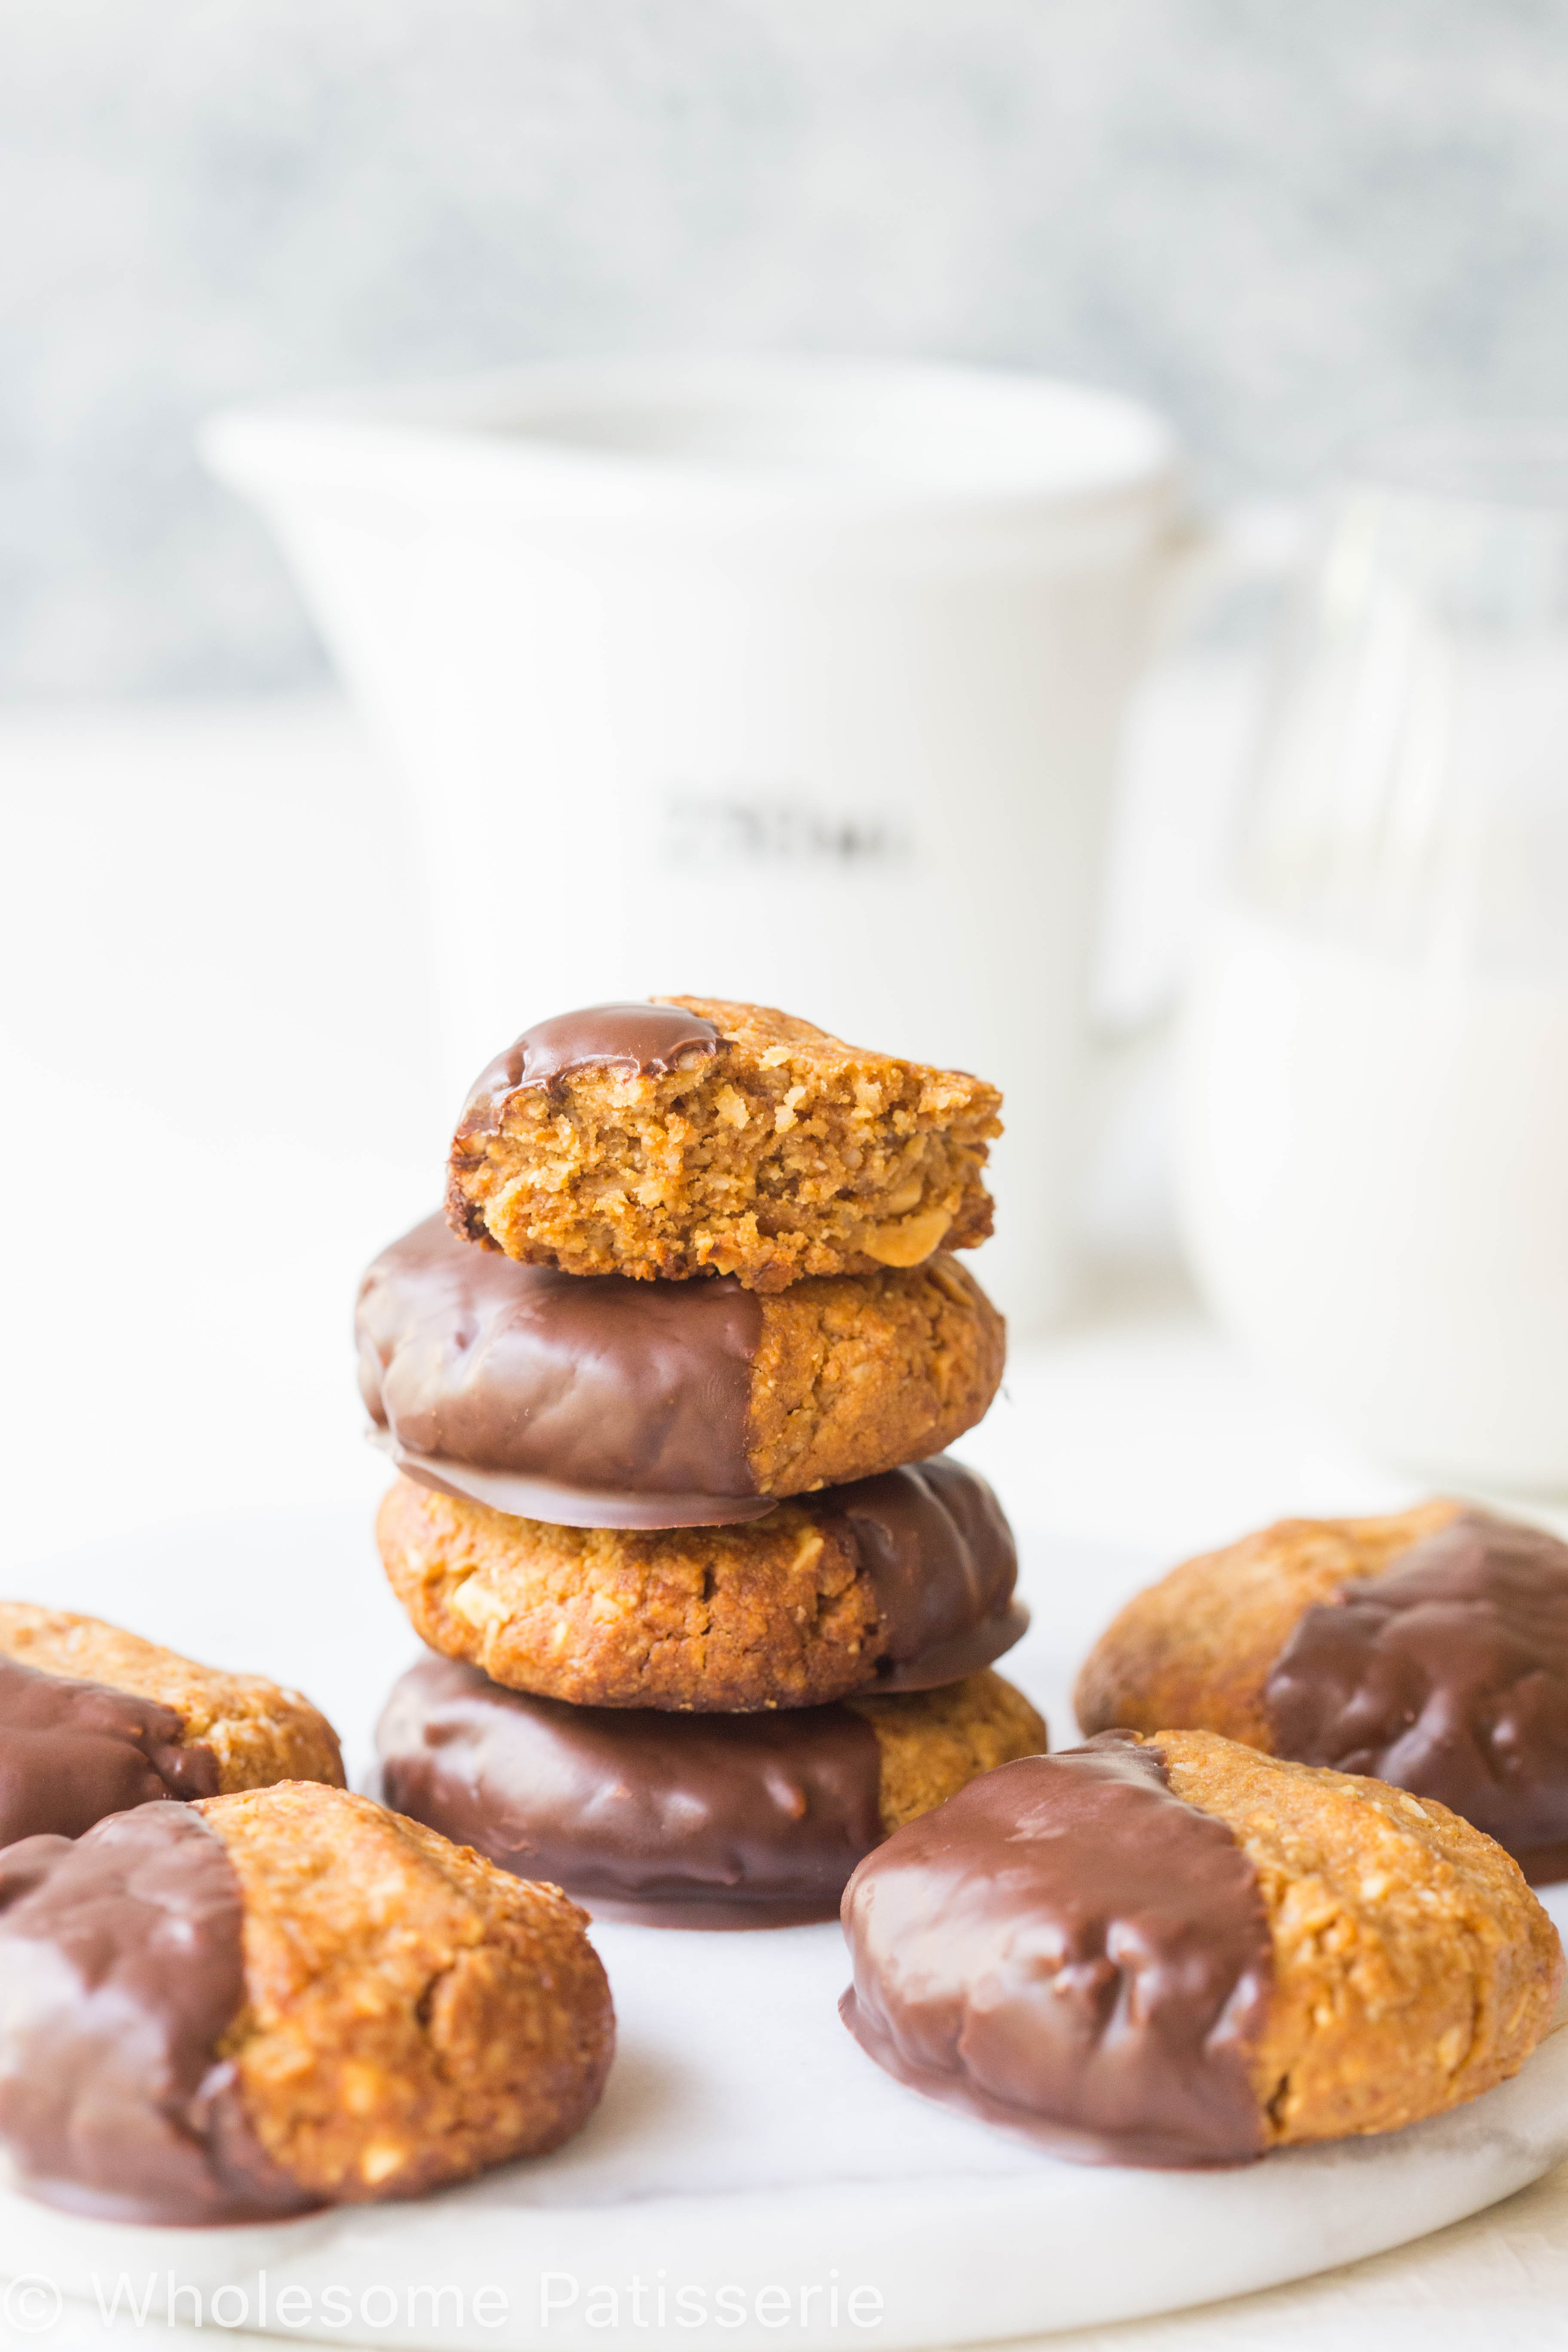 gluten-free-peanut-butter-chocolate-cookies-flourless-one-bowl-chocolate-delicious-amazing